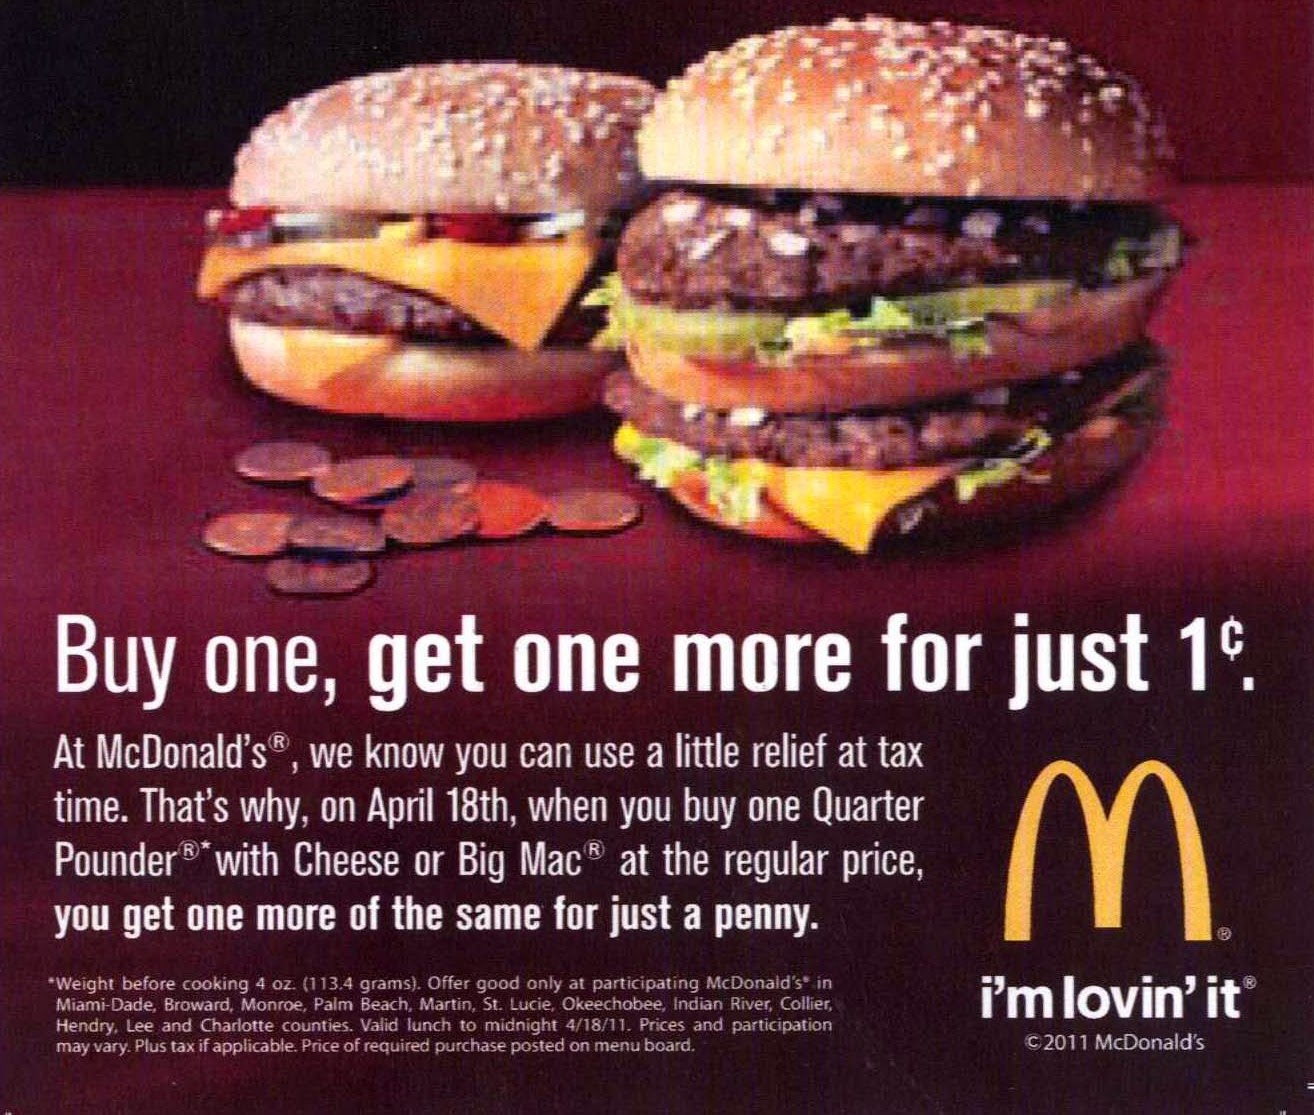 Find the latest McDonald's coupons on CUPONATION Singapore 8 active McDonald's coupon code verified 5 minutes ago ⭐ Today's coupon.